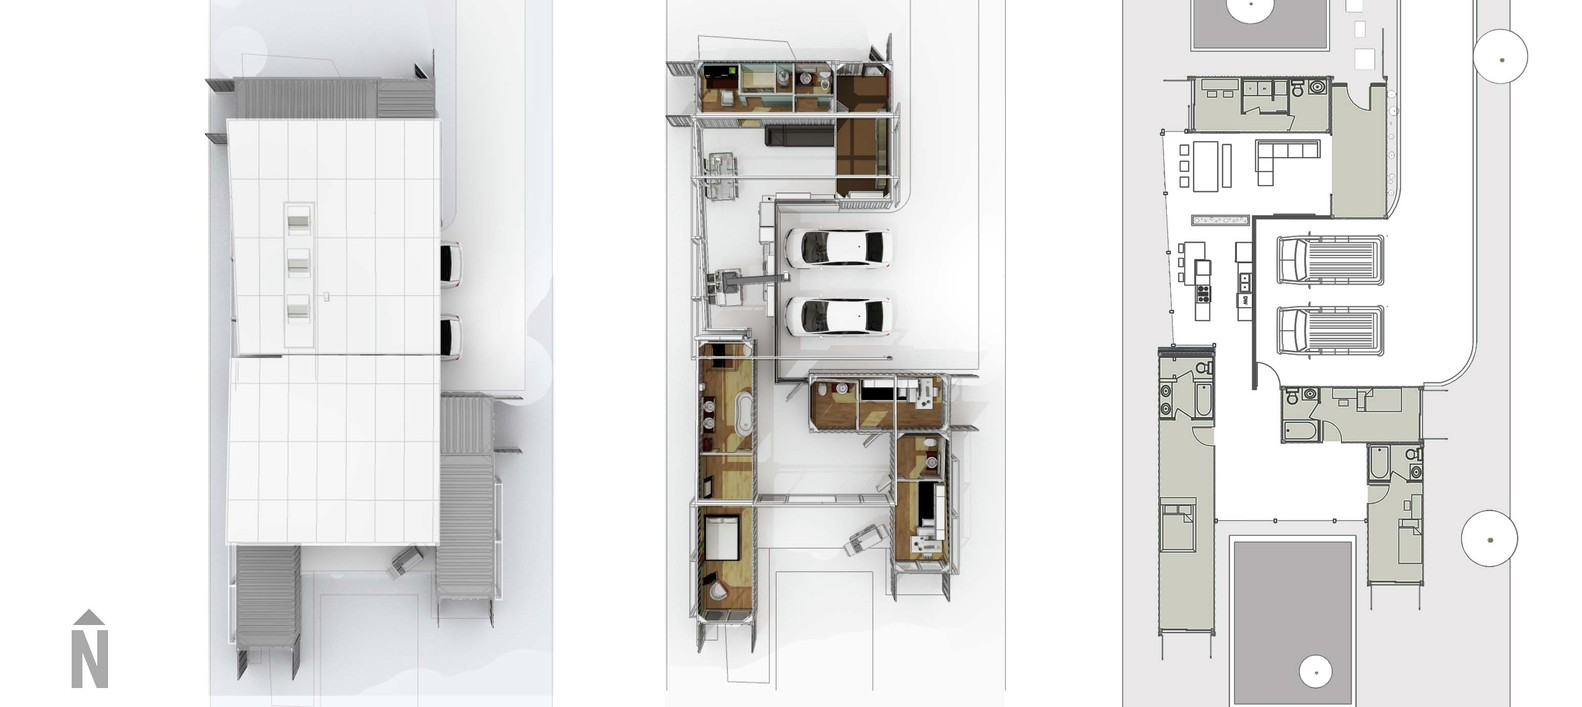 Gallery of Florida Case Study House Competition Proposal / Co-tain ...